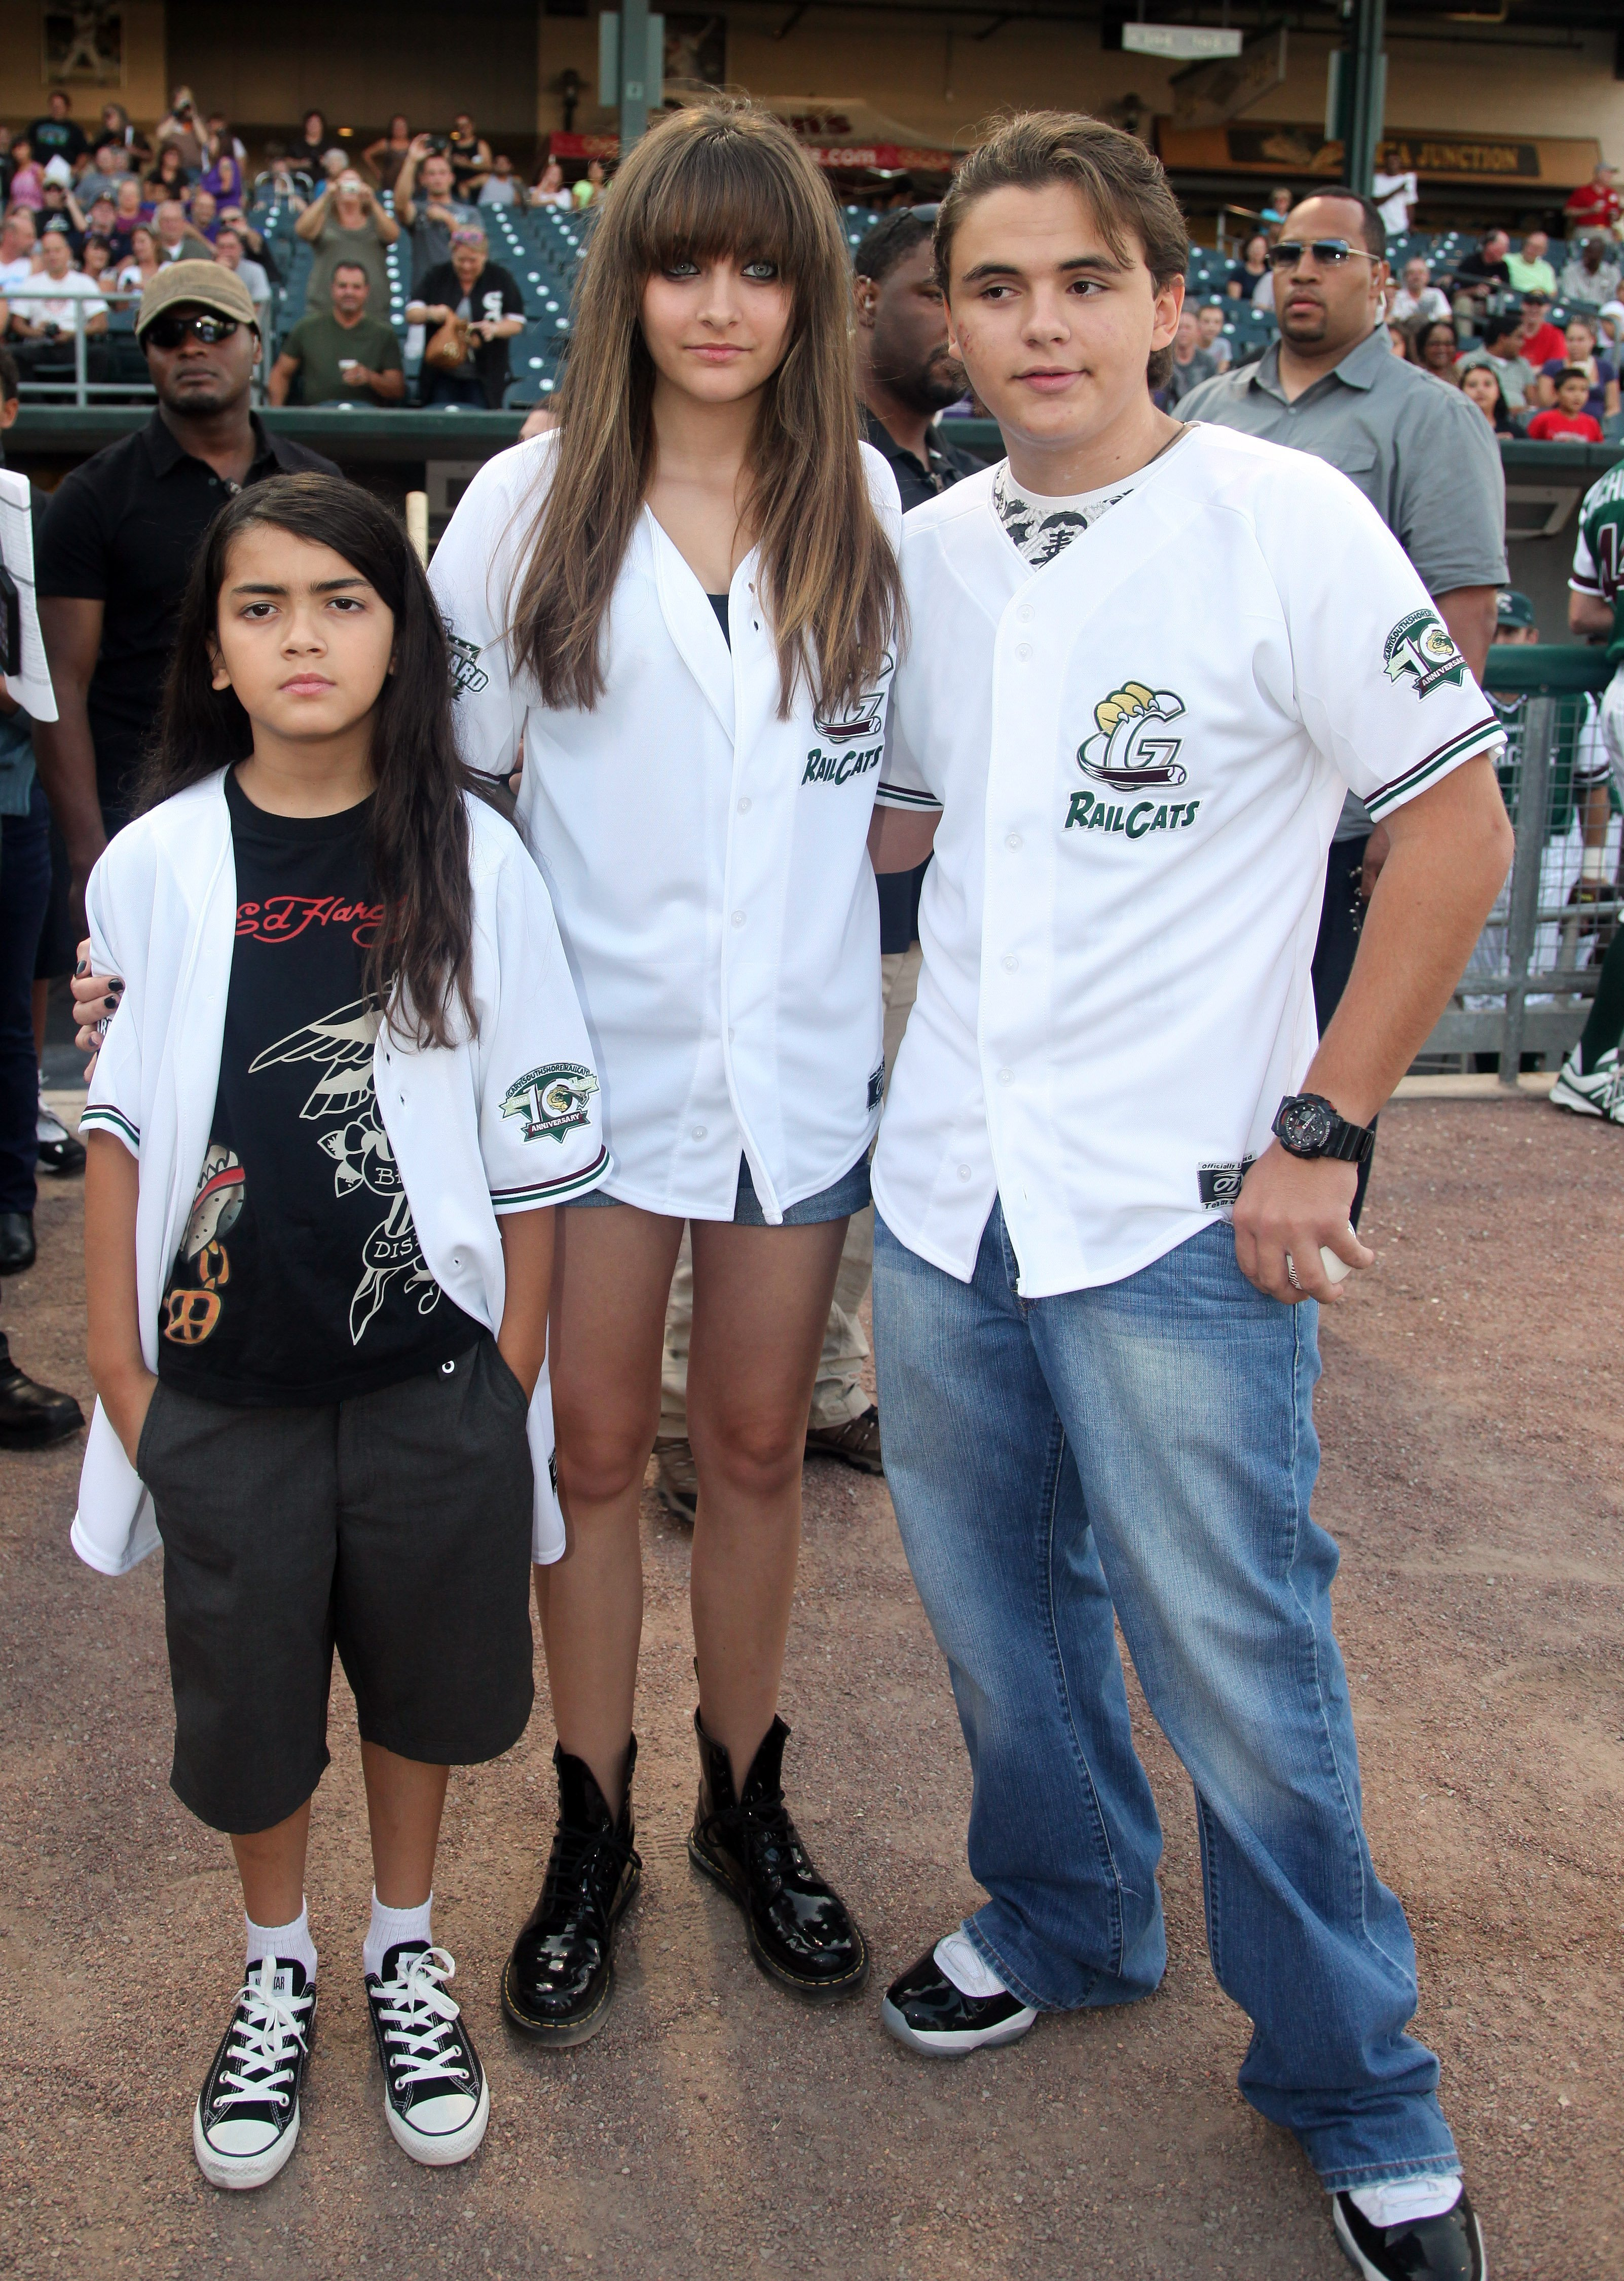 Prince Michael Jackson II, Paris Jackson and Prince Jackson attend the St. Paul Saints Vs. The Gary SouthShore RailCats baseball game. | Photo: GettyImages